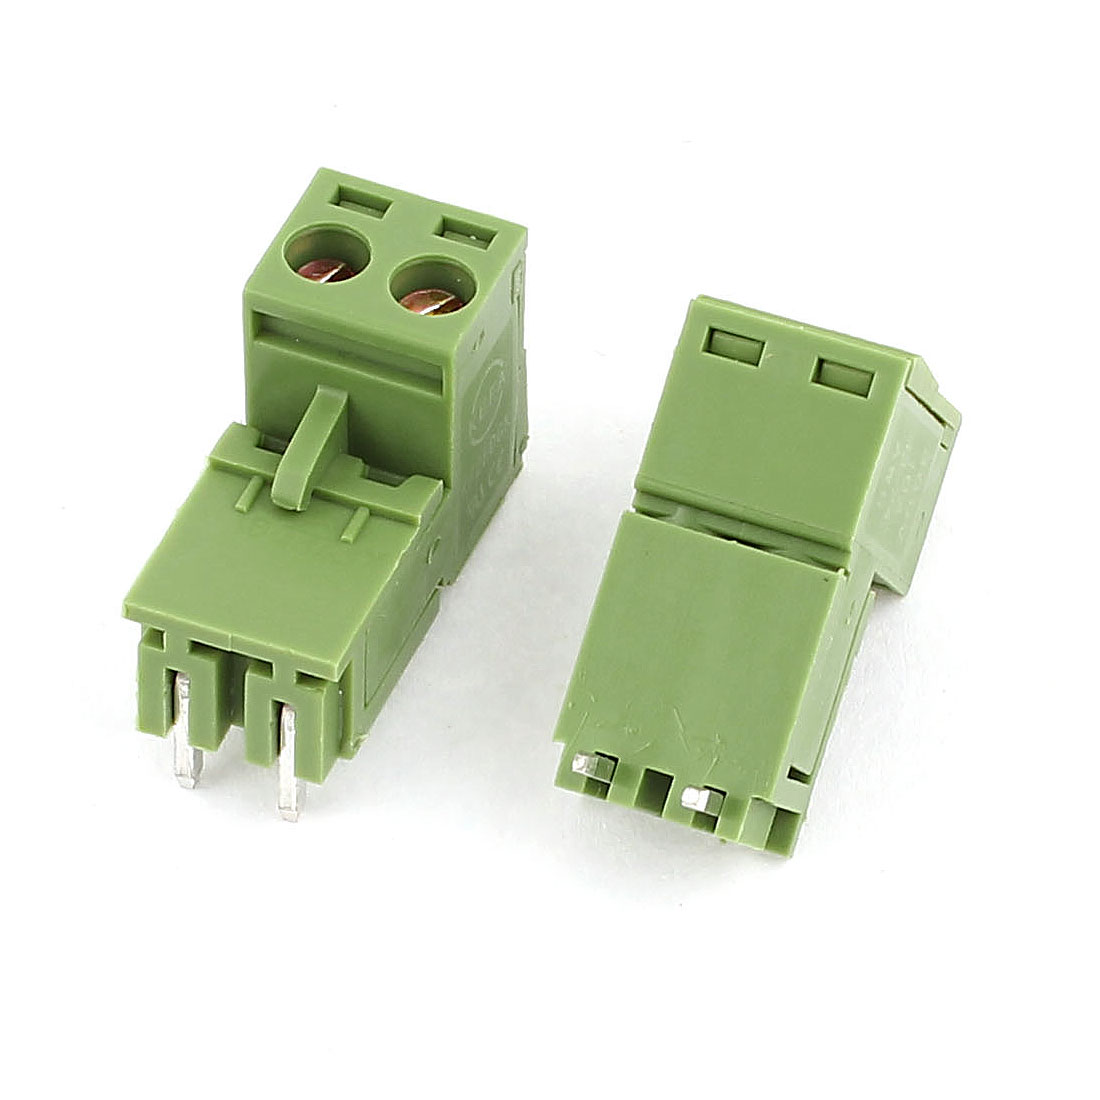 2 Pcs Green 2 Poles 5.08mm Pluggable Screw Terminal Block Right Angle Connector 300V 10A